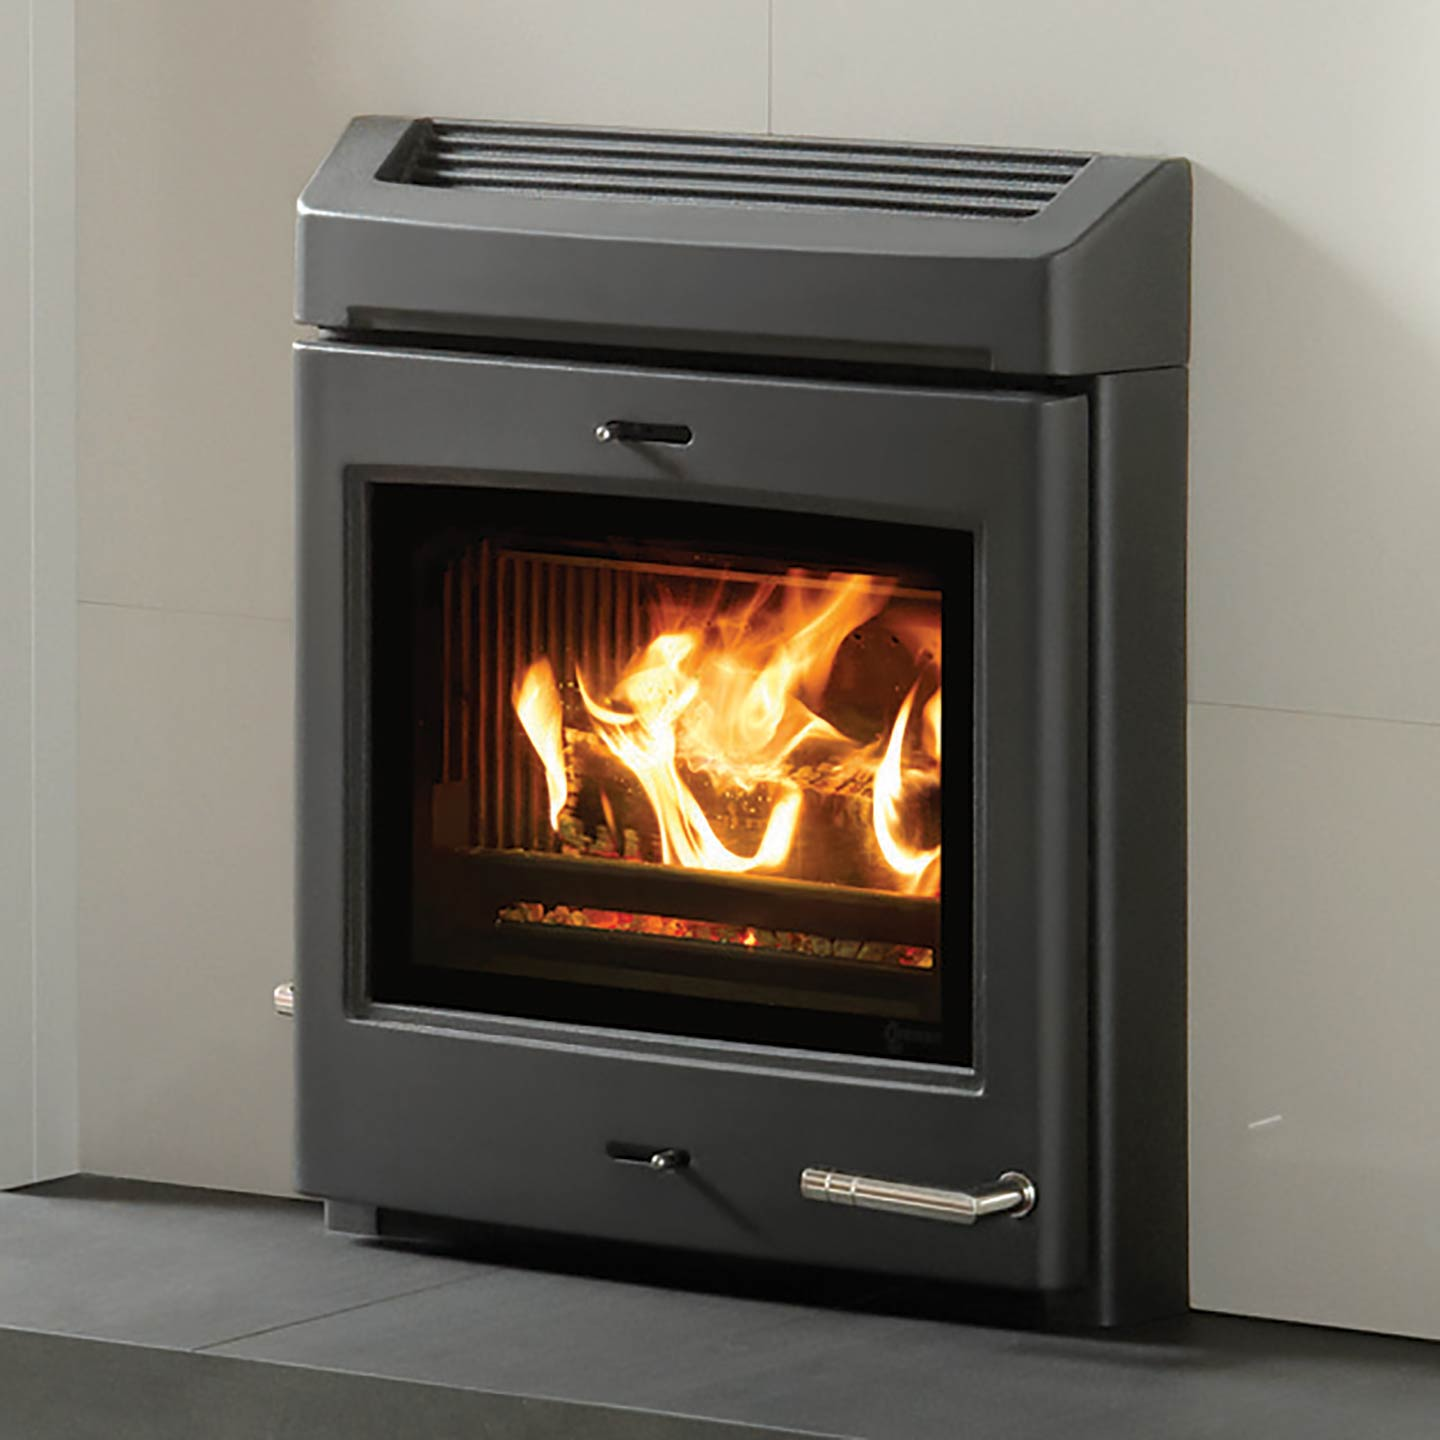 Yeoman Cl Milner Inset Multi Fuel Stove The Stove Site